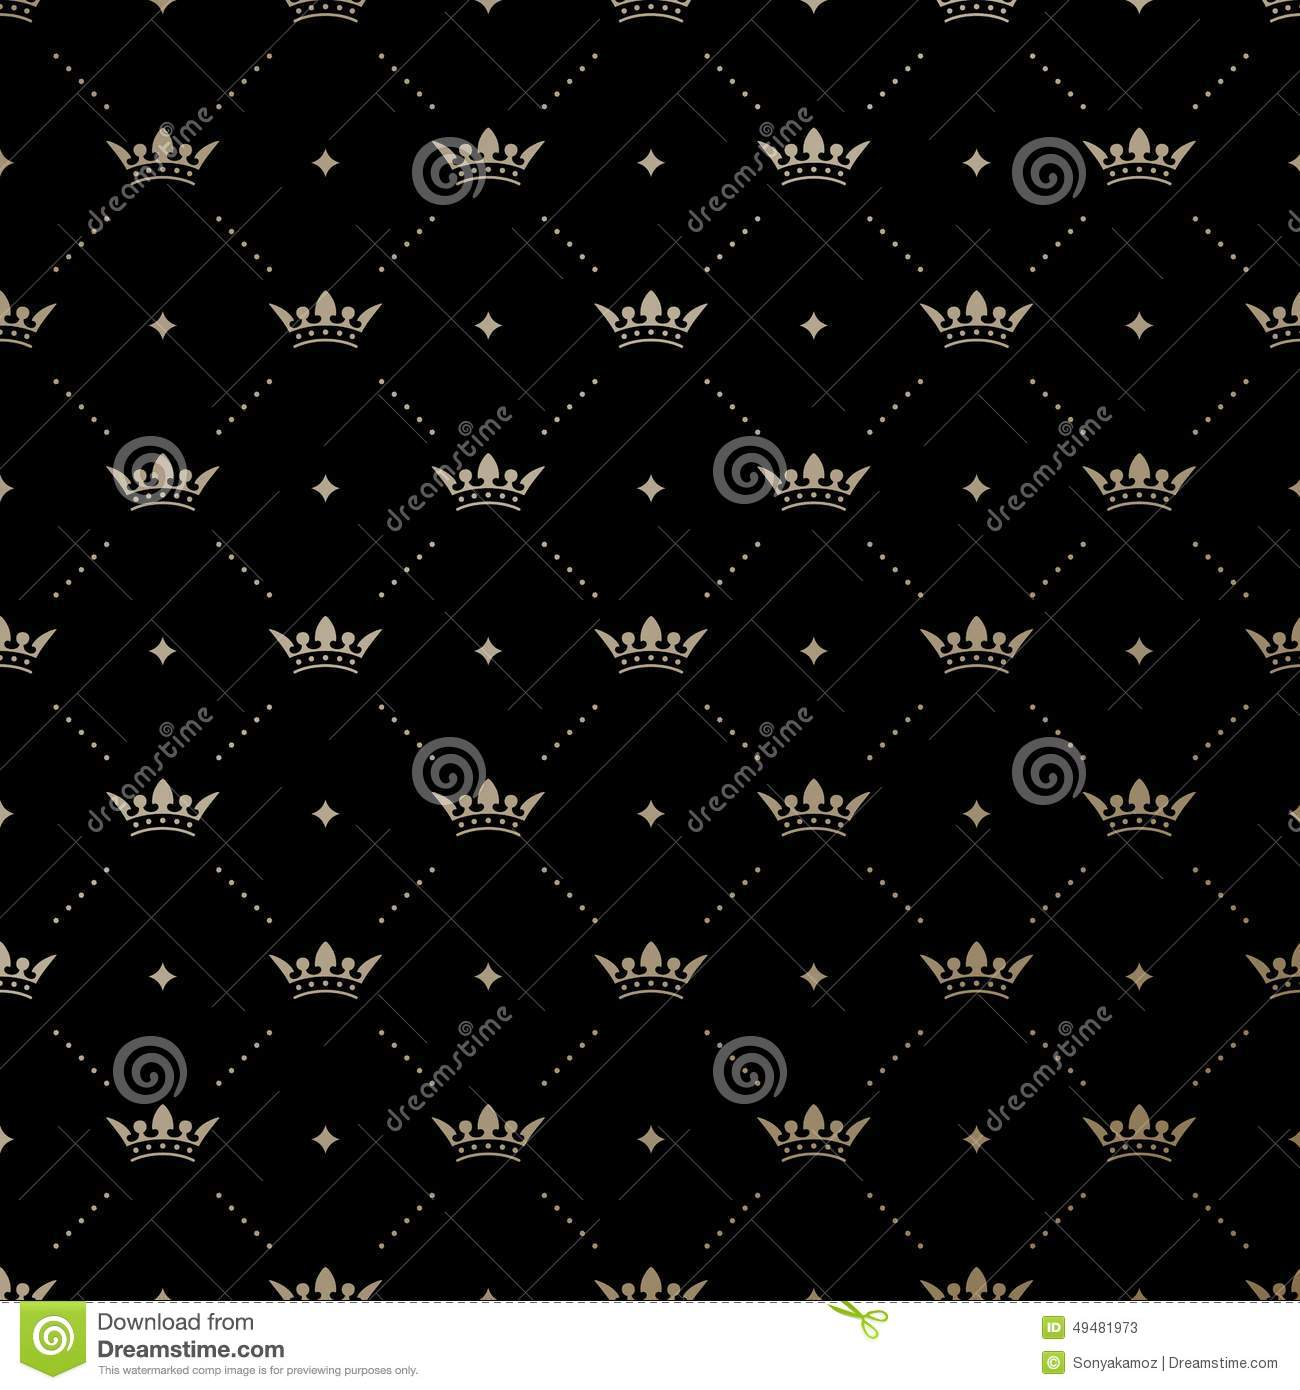 crowns background wallpaper - photo #28